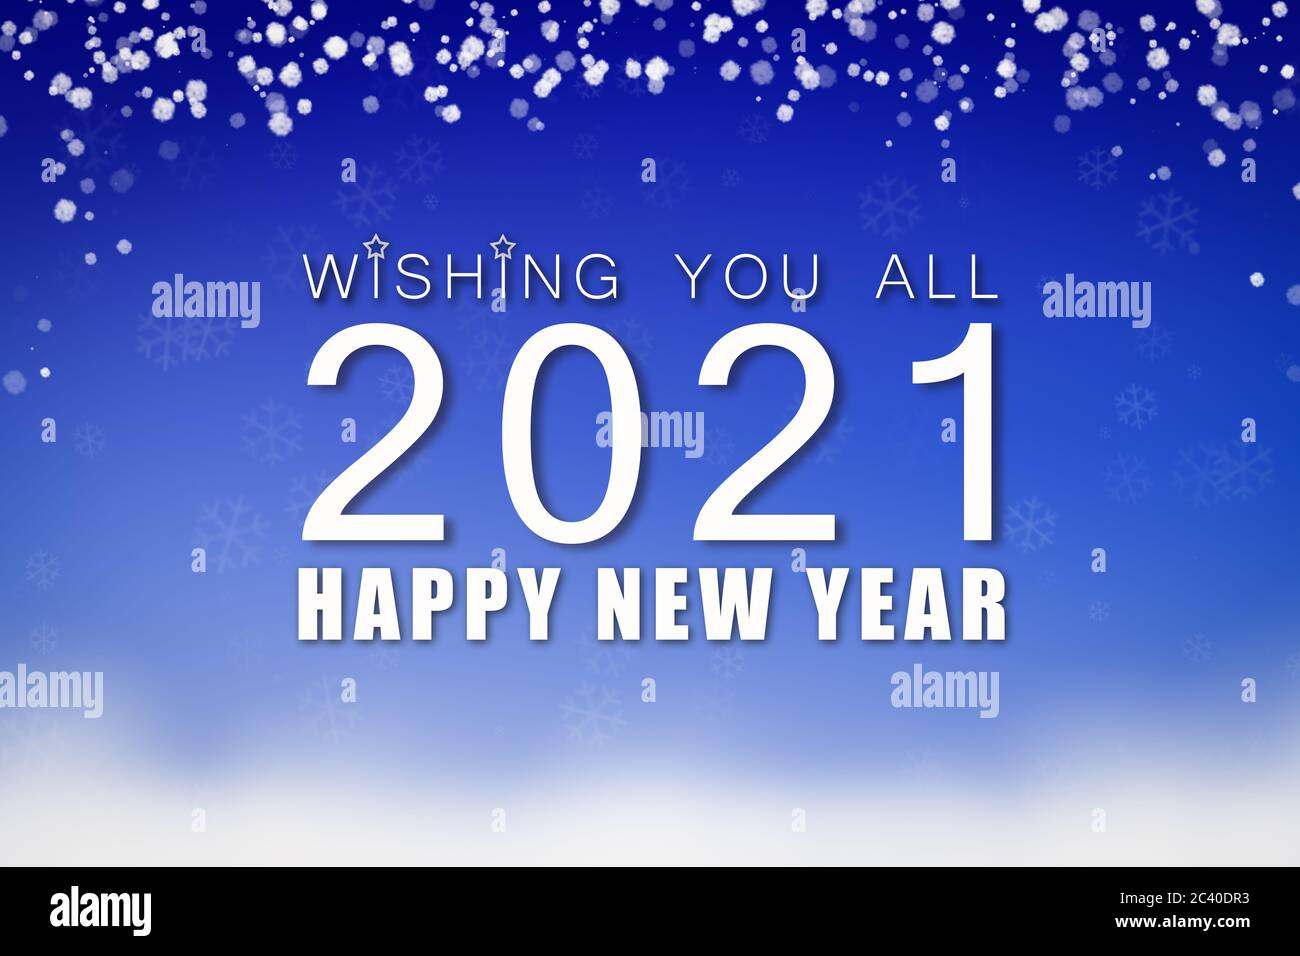 happy new year 2021 high resolution stock photography and images alamy https www alamy com happy new year 2021 blue greeting card with snow design image363887191 html